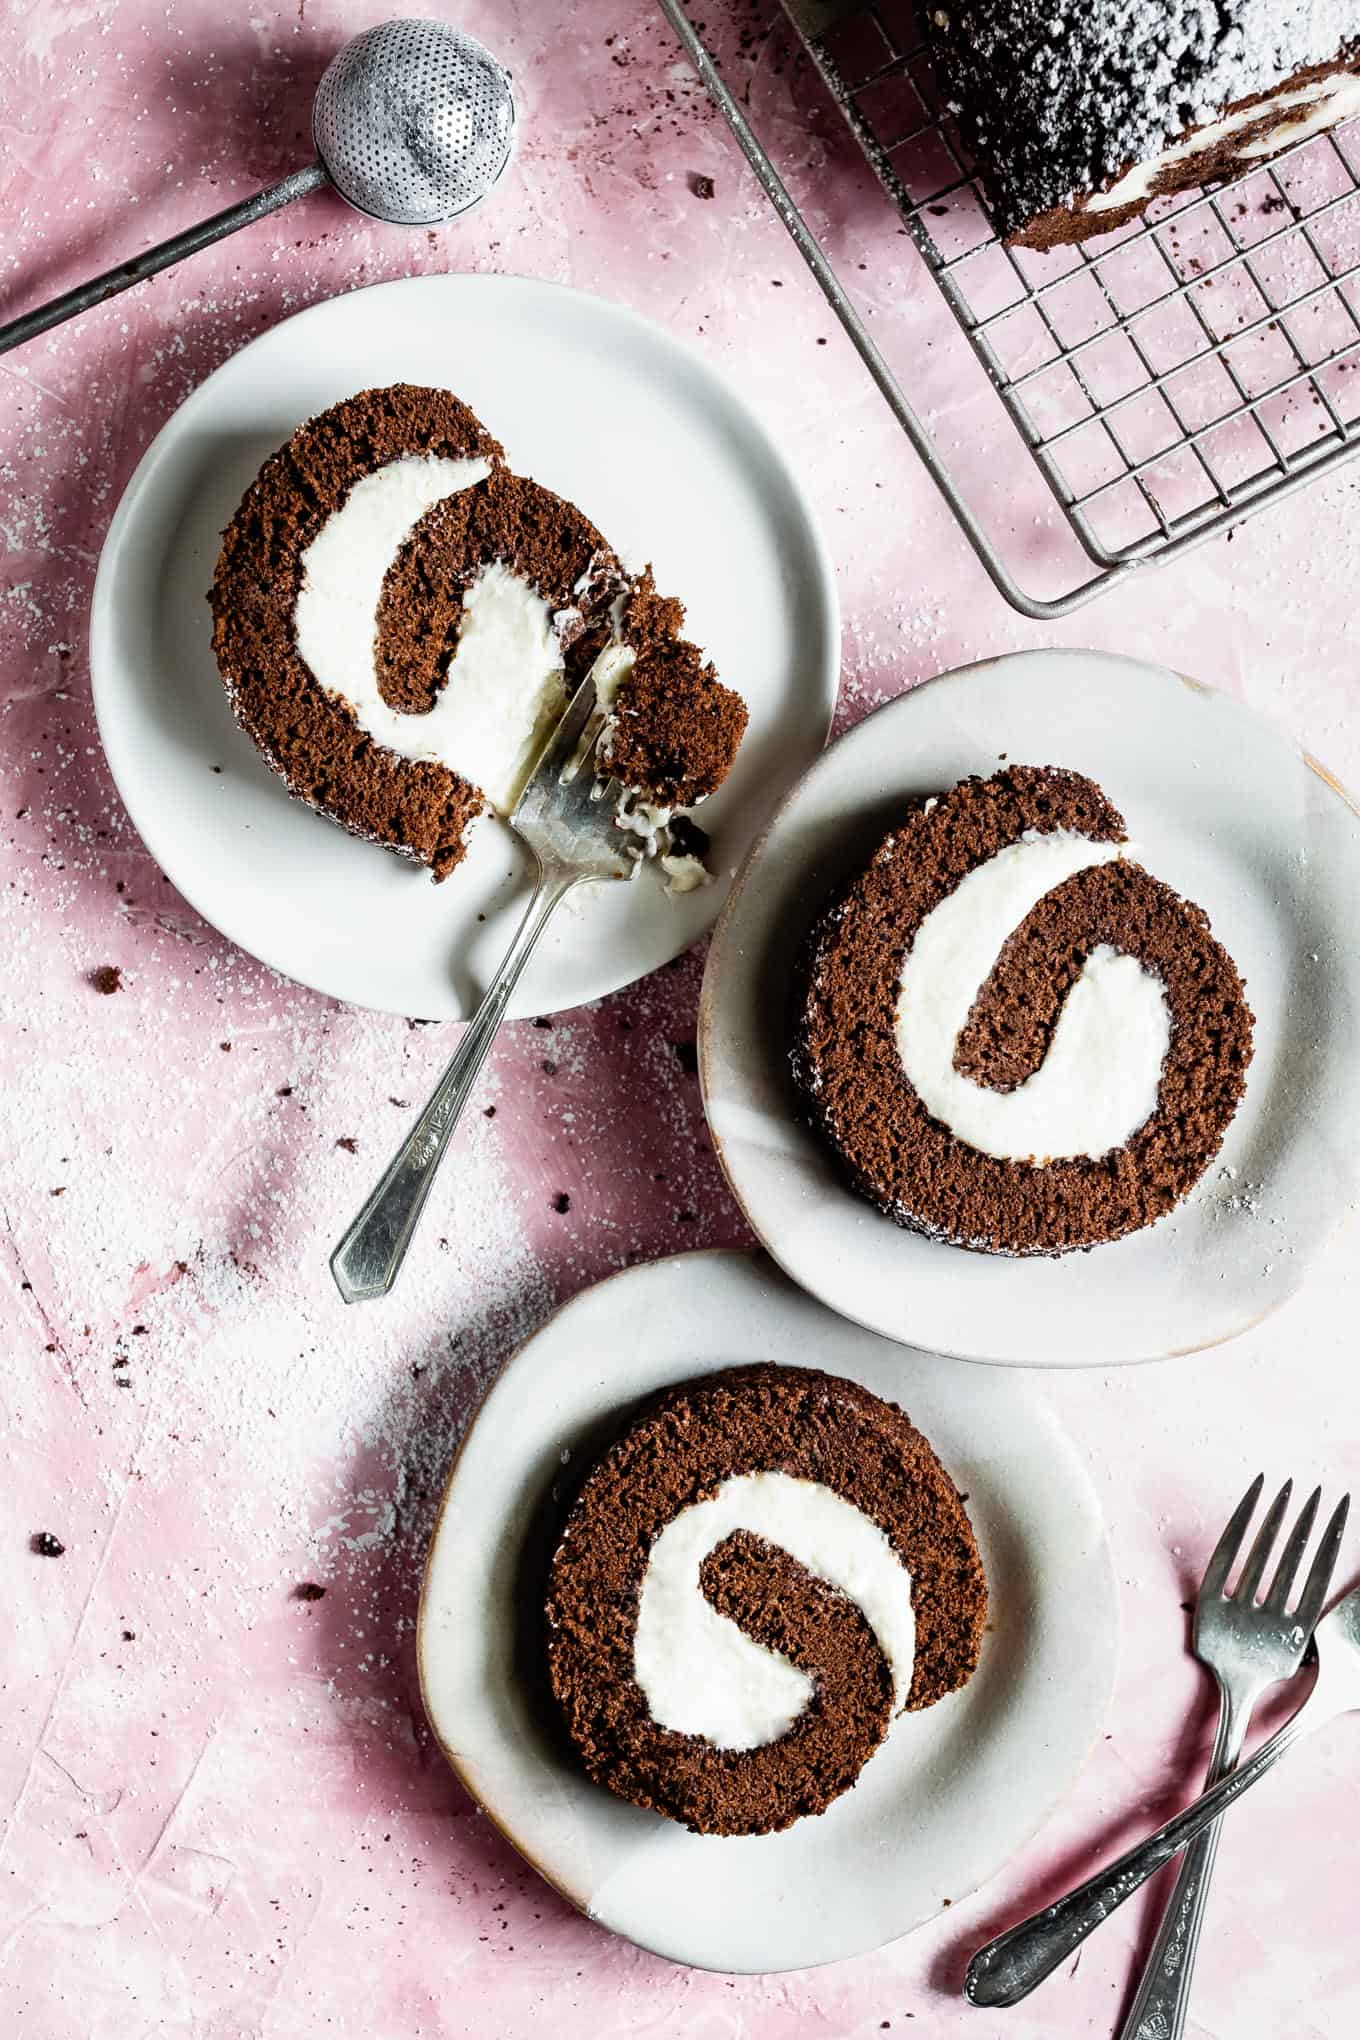 Chocolate Swiss Roll Gluten-Free